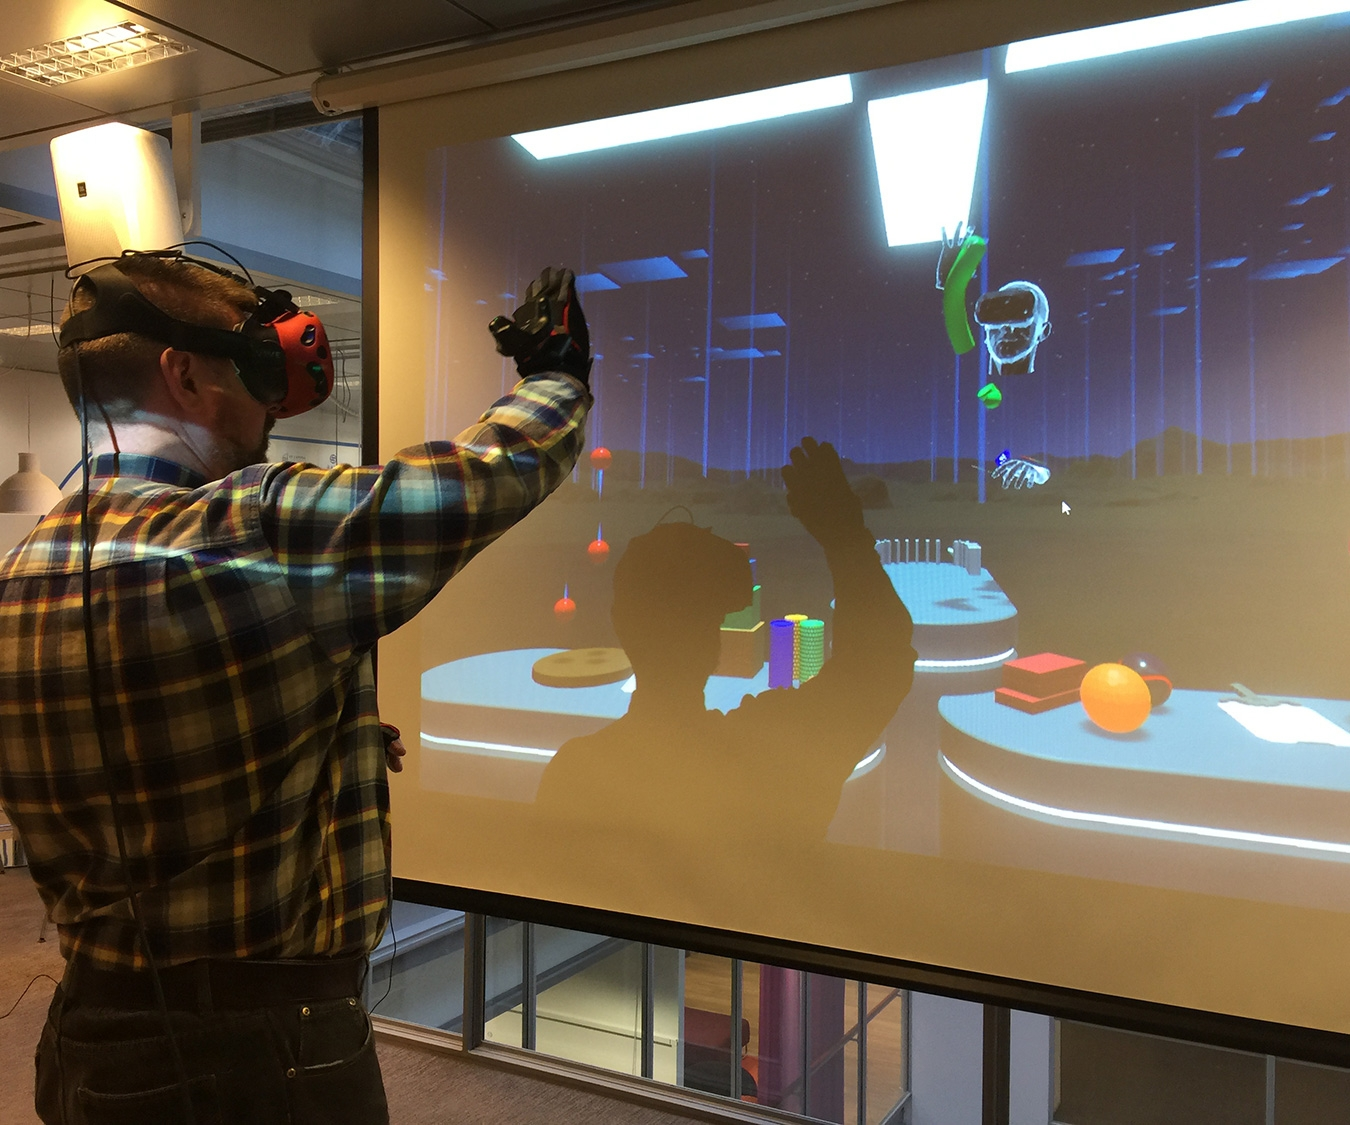 These awesome motion-capture gloves let you play with objects in VR